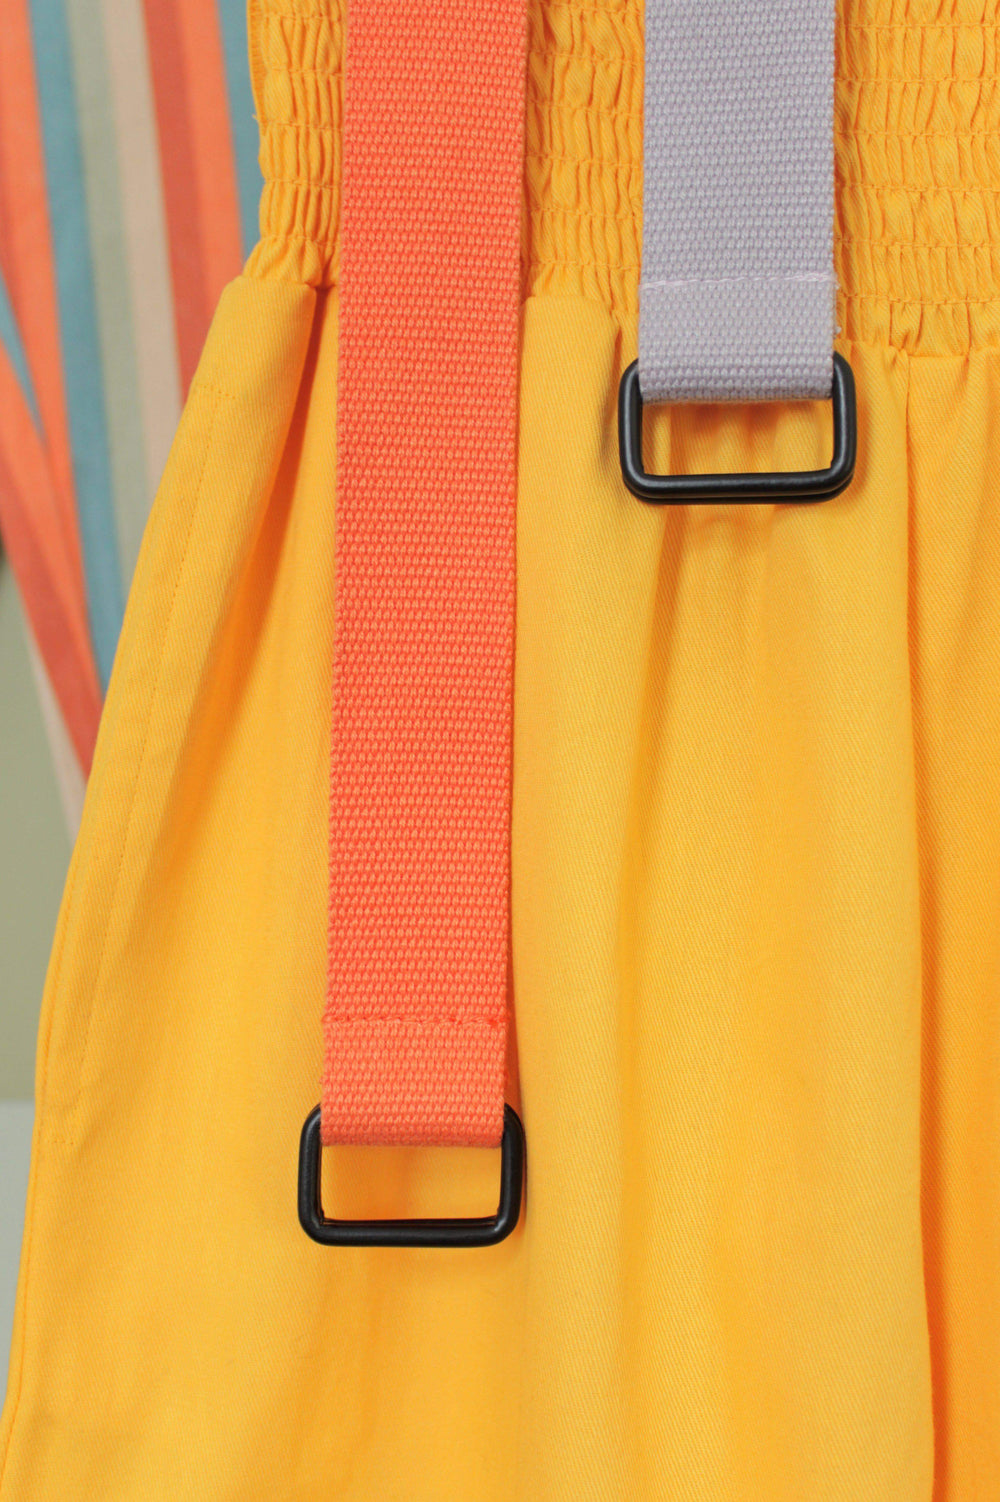 Lucy & Yak Belt California Collection - 'Flynn' Woven Belt in Iris